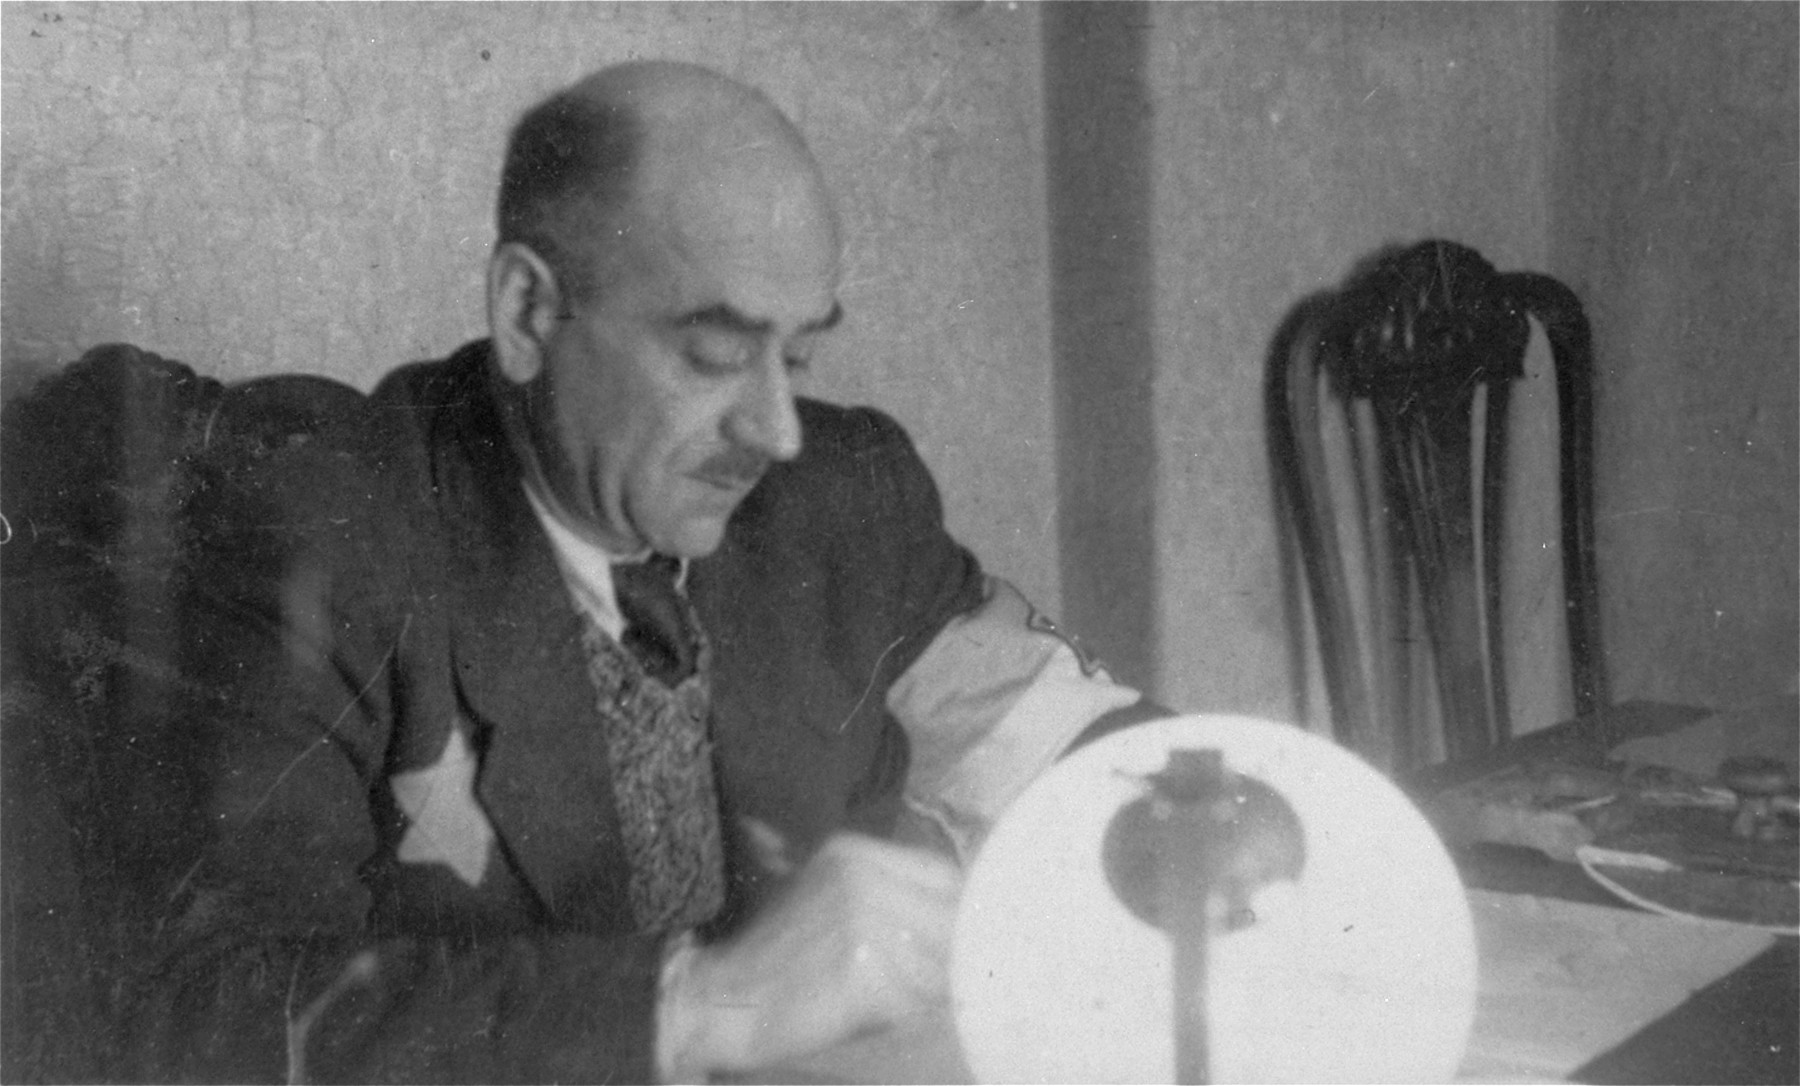 Leon Rozenblat, chief of the ghetto police, is seated in his office in the Lodz ghetto.